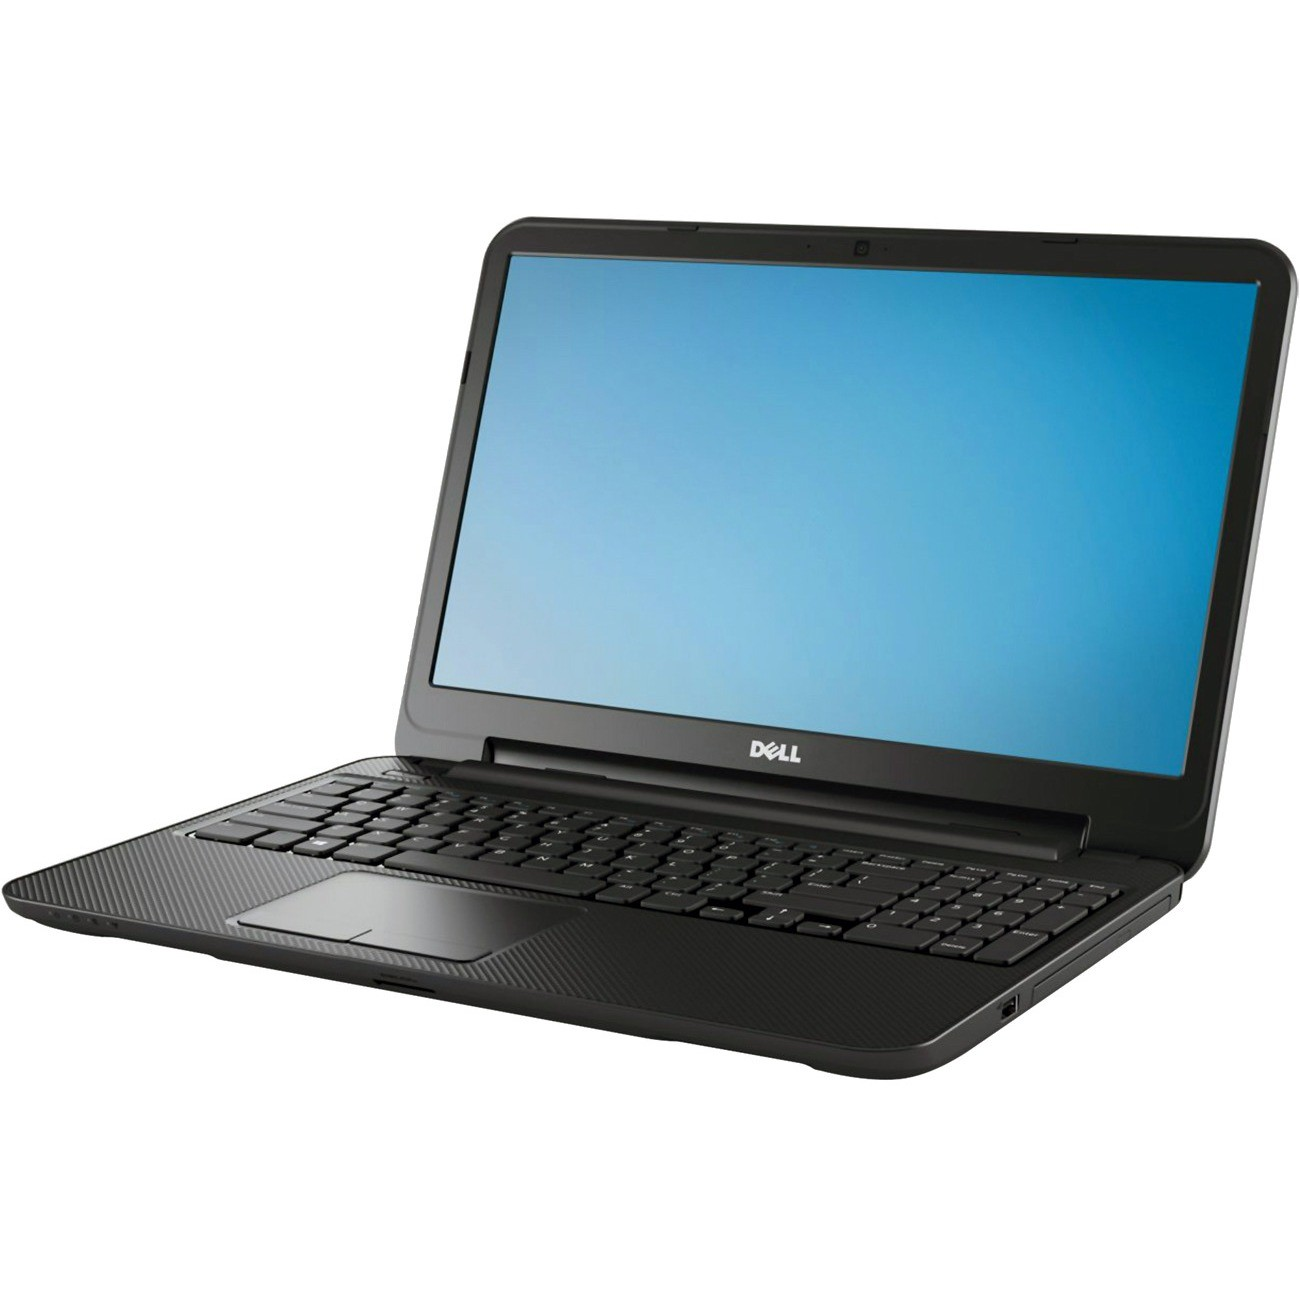 dell inspiron 15r amd lotus pink amd quad walmart com rh walmart com Dell PC User Manual Dell PC User Manual